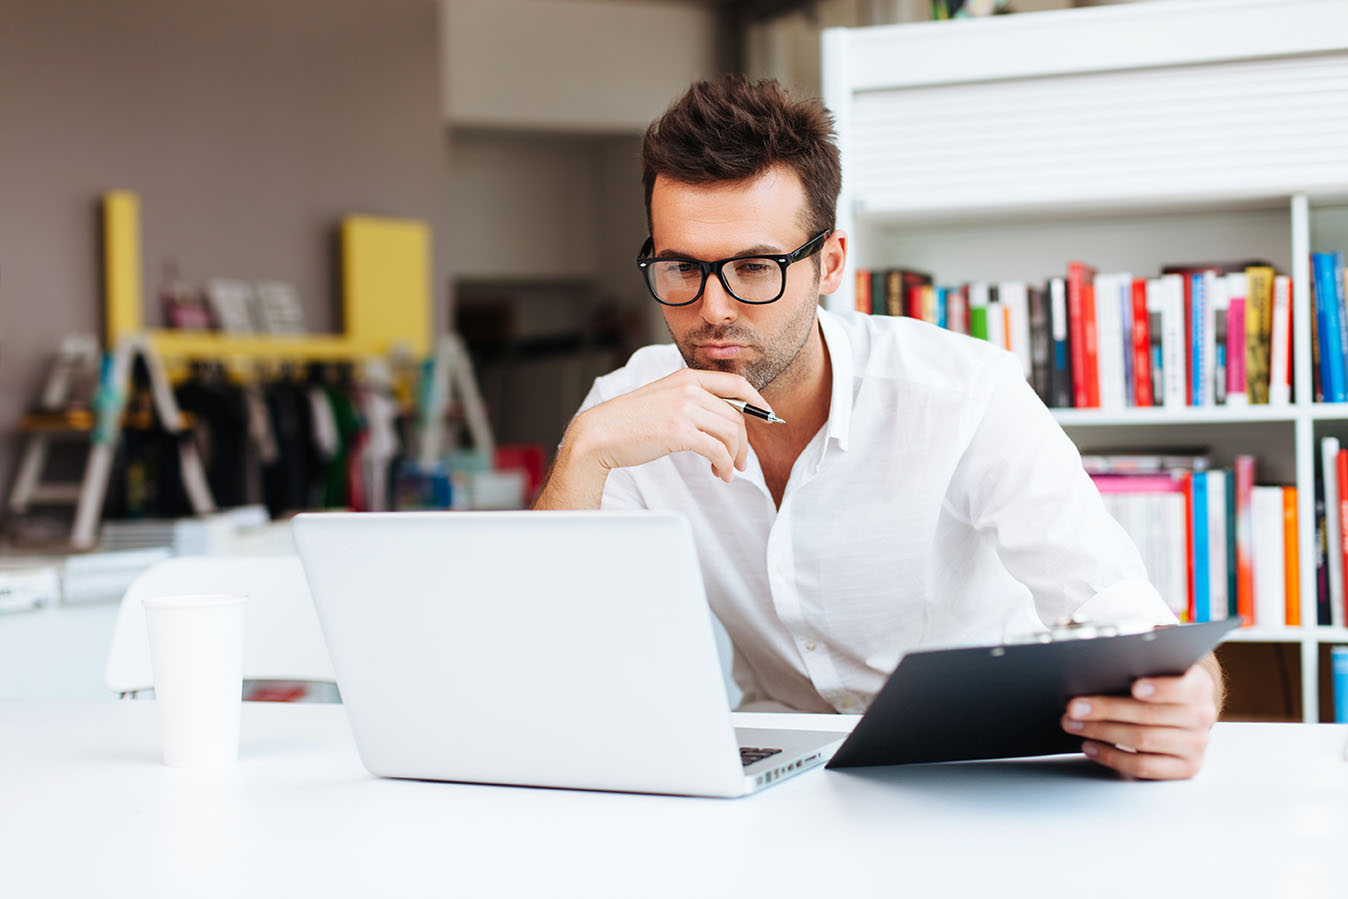 related studies for online shopping